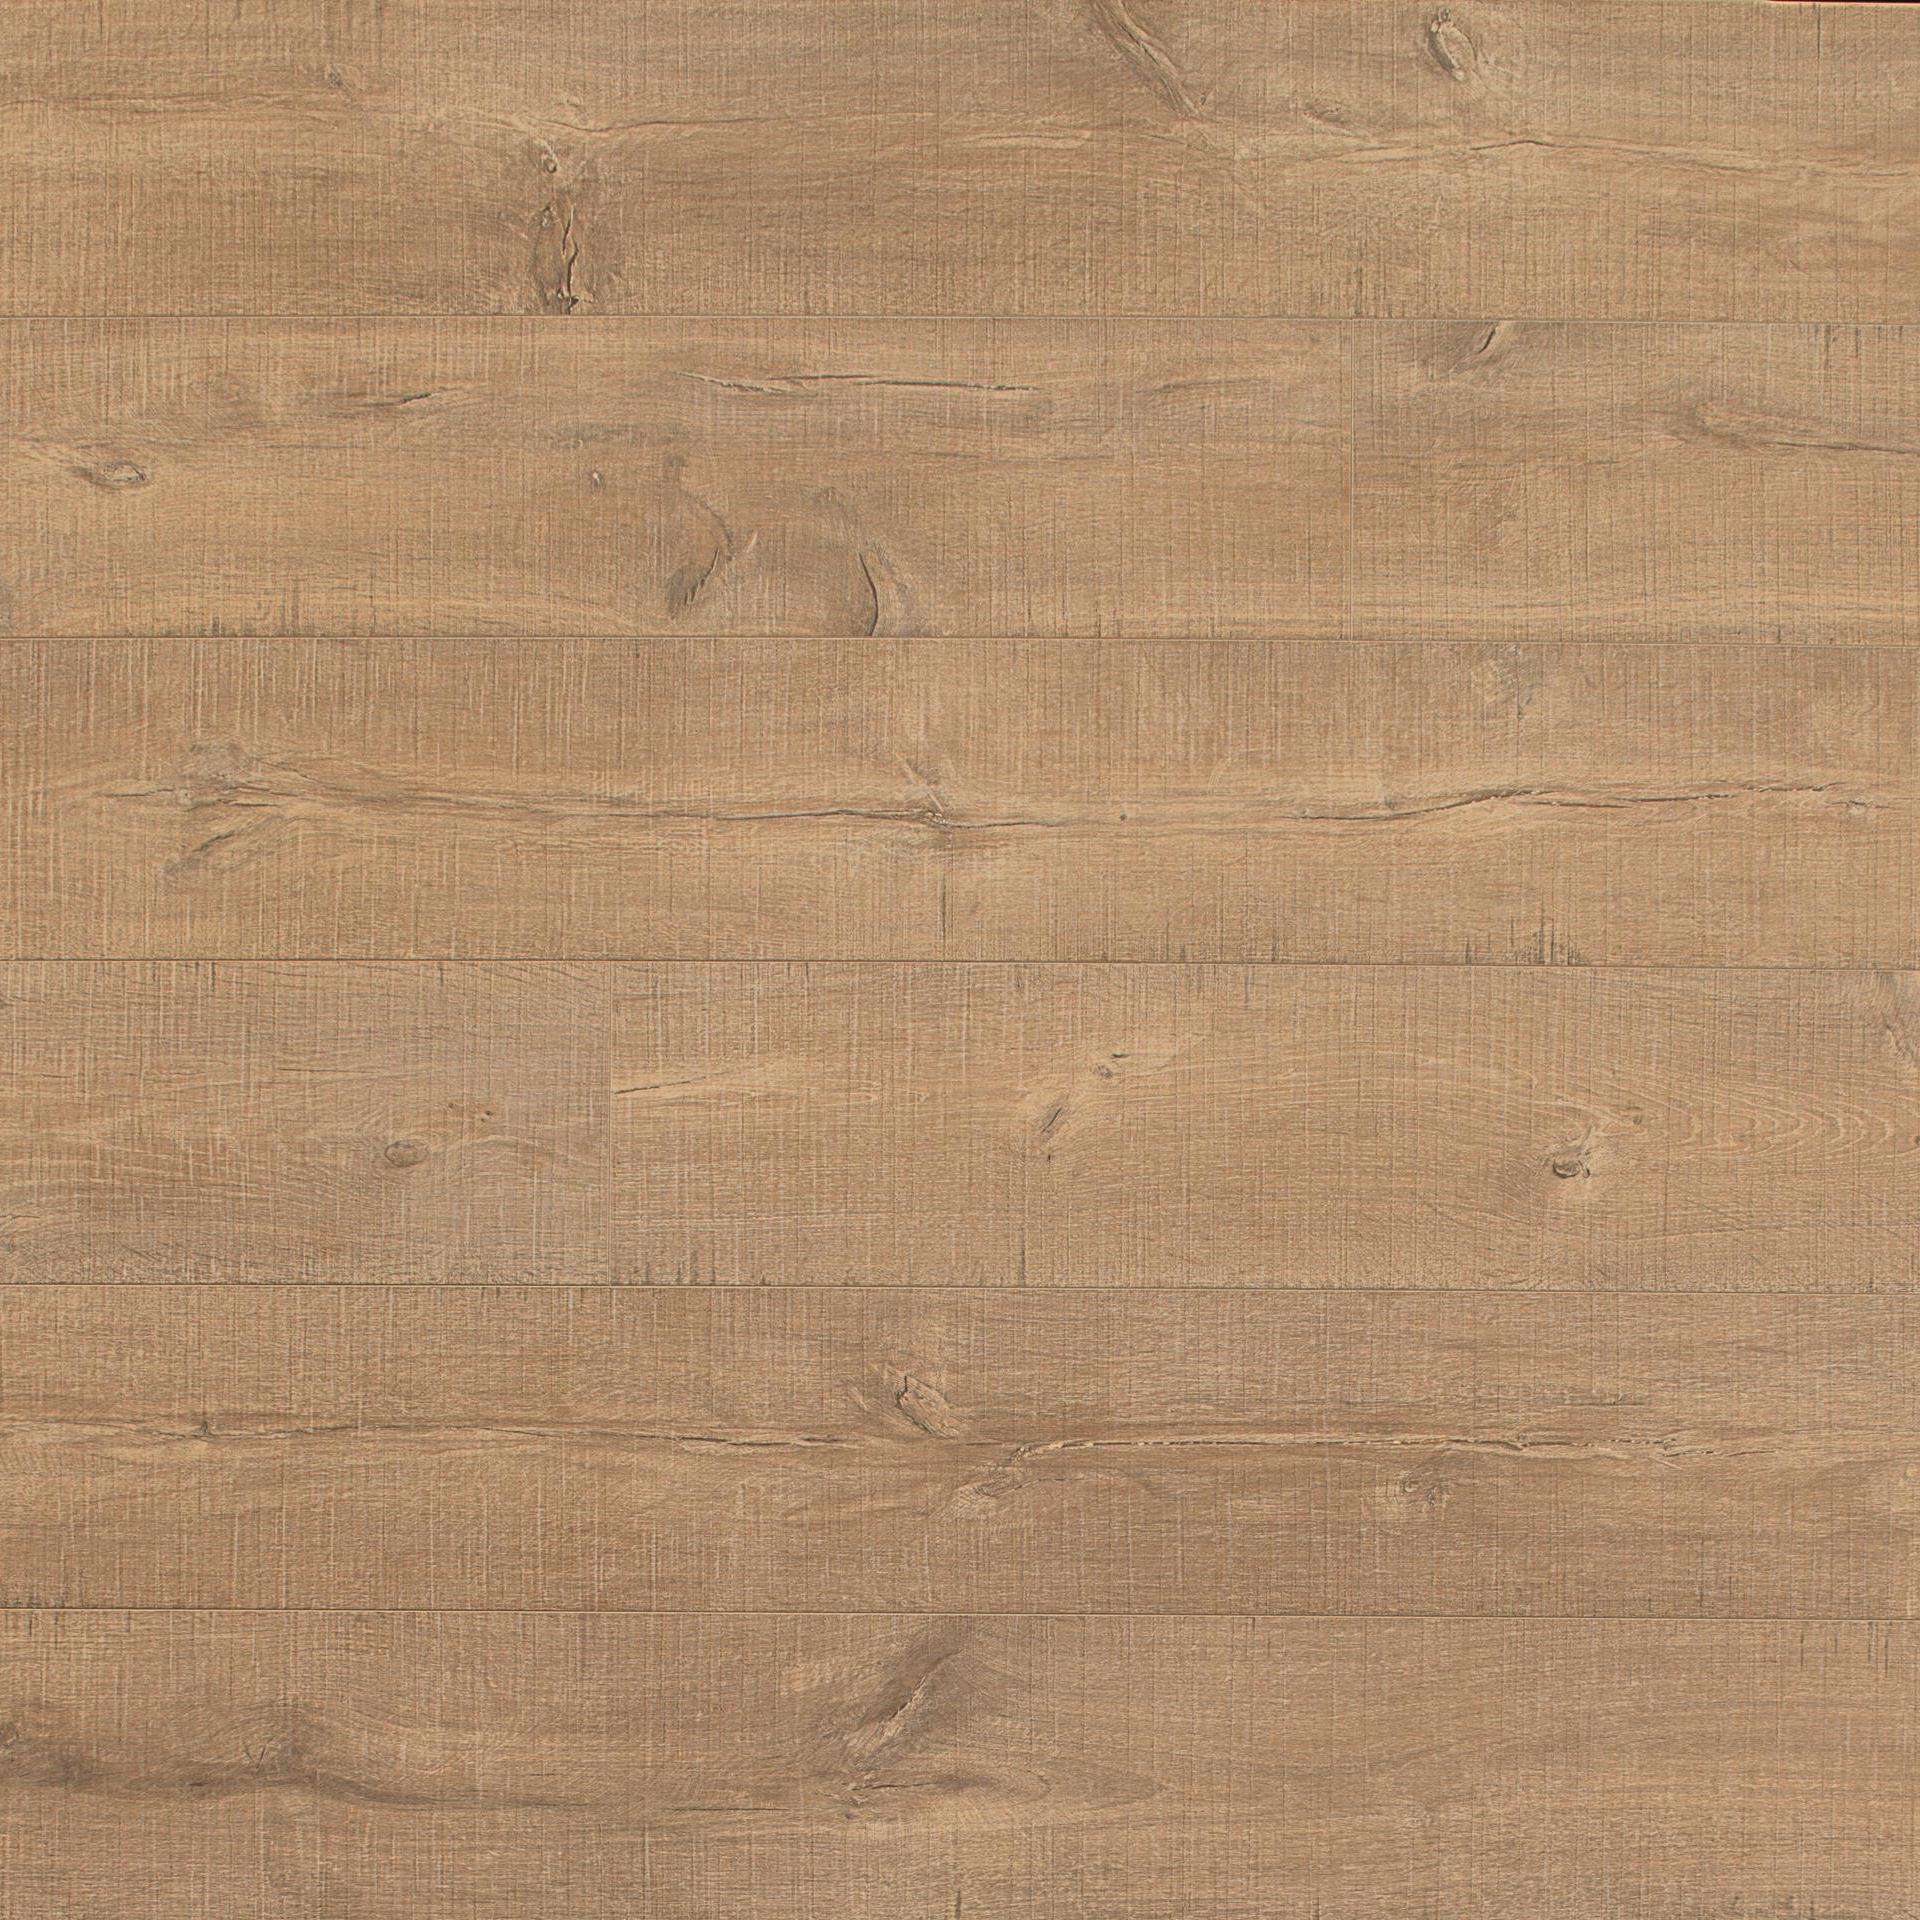 Malted Tawny Oak Reclaimé Collection laminate